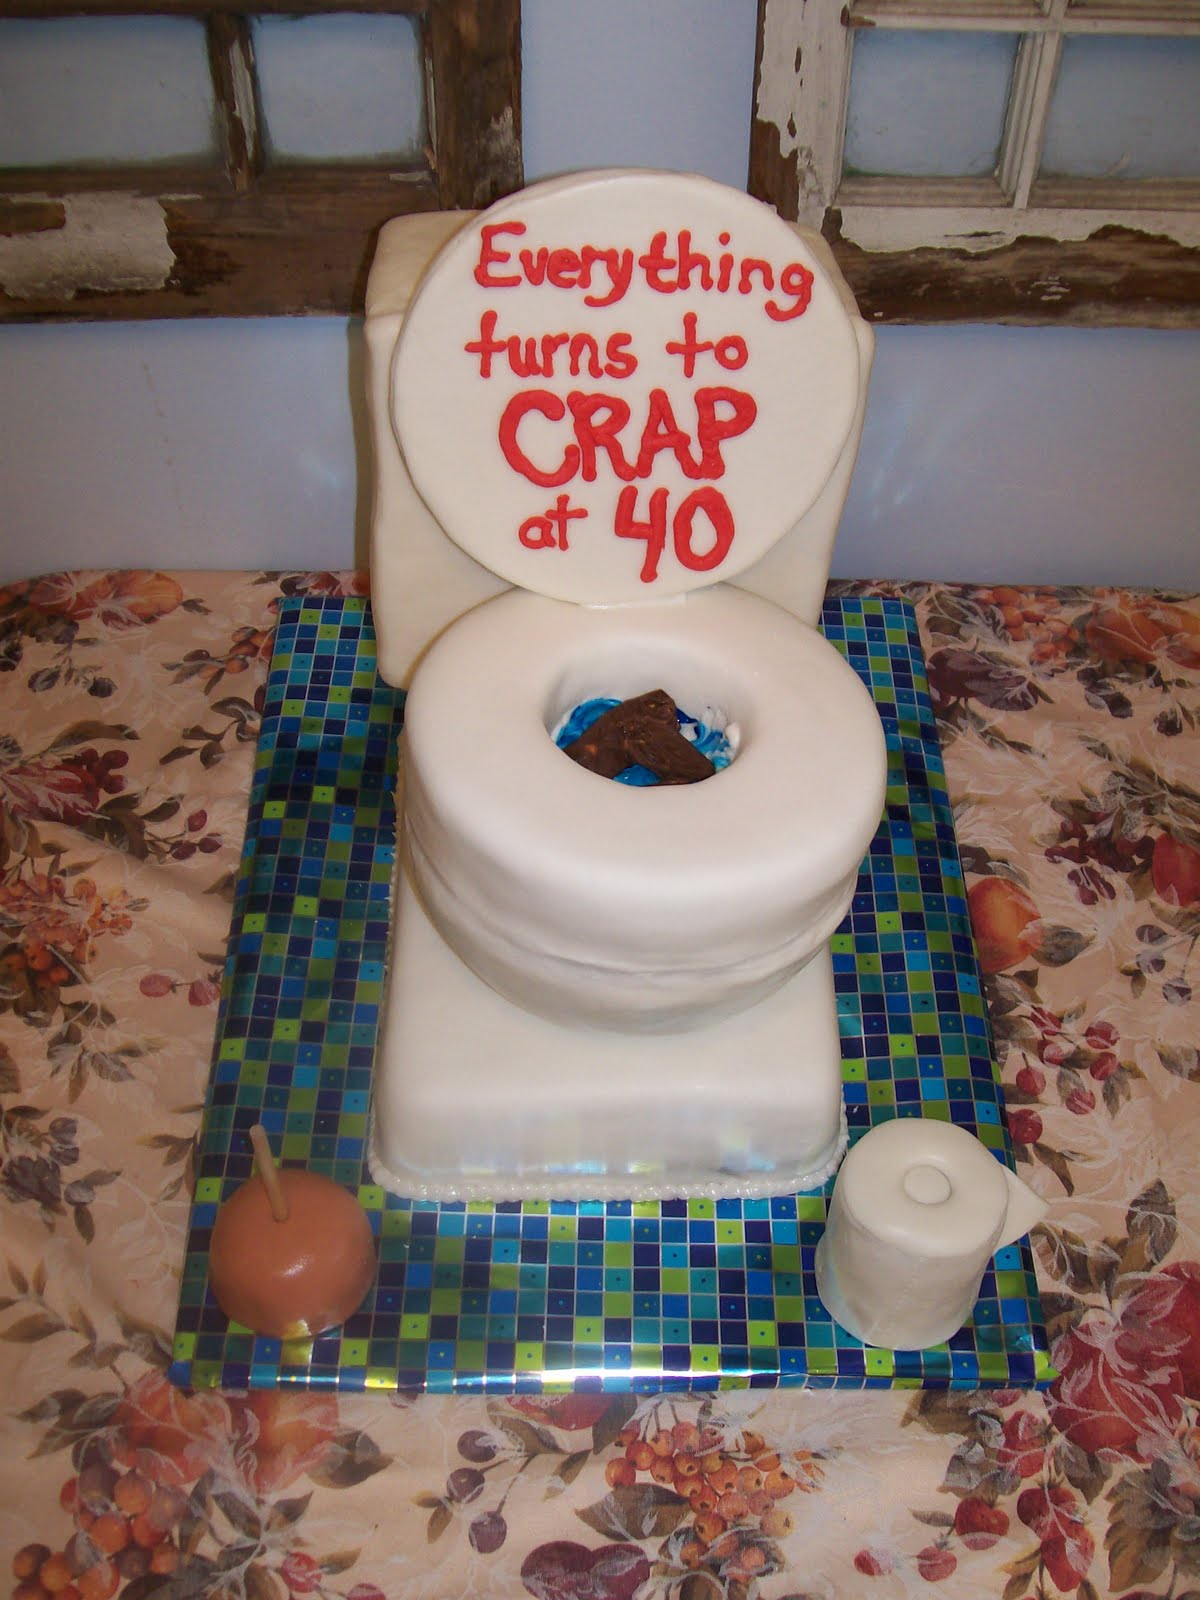 Funny Toilet Cake Images : Let Them Eat Cake!: Toilet Cake